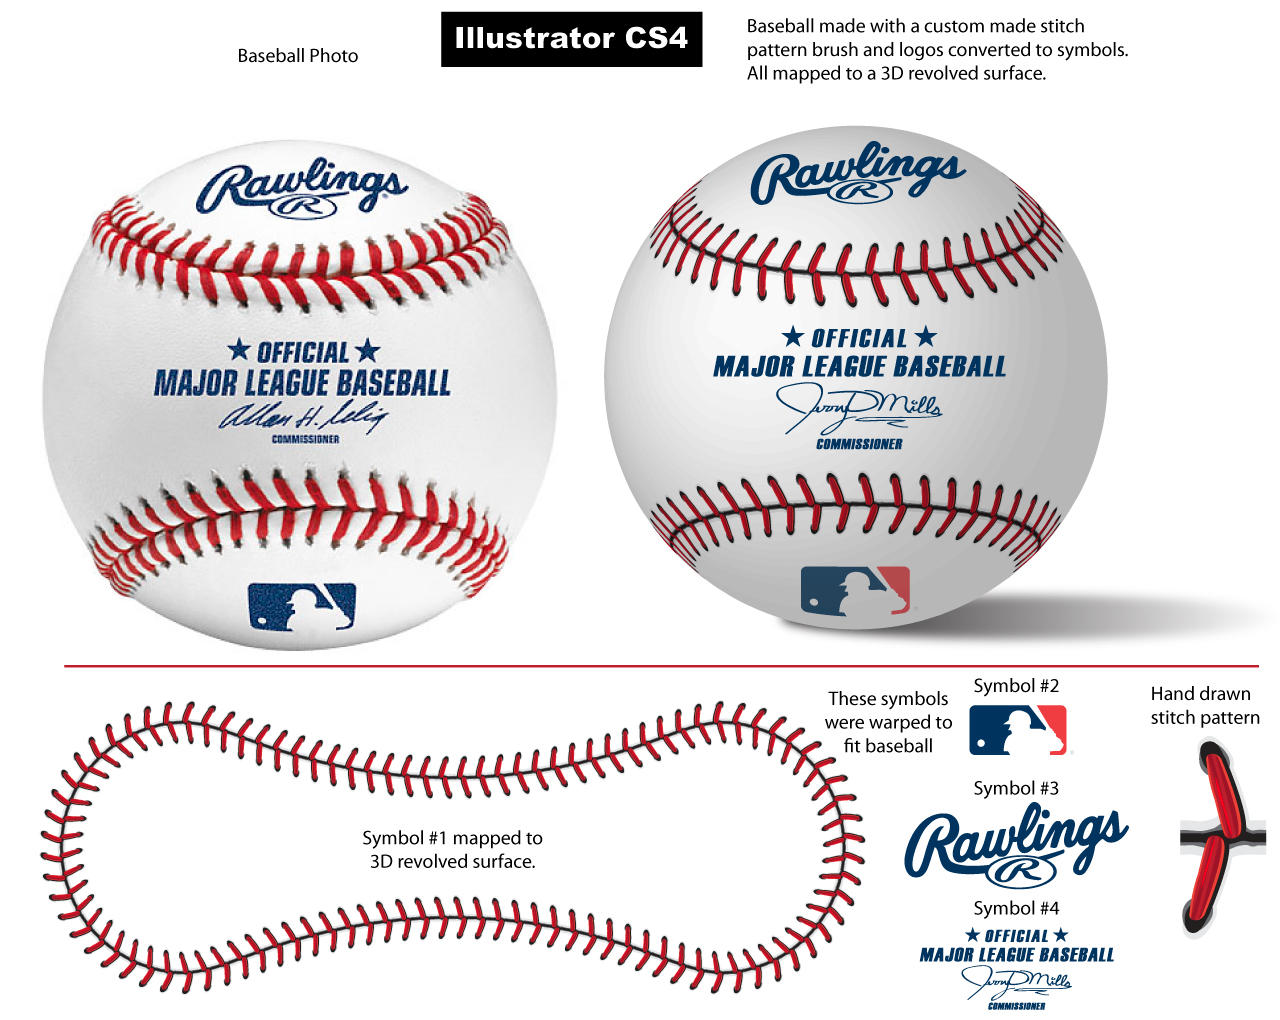 Baseball stitch pattern brush by vectorgeek on deviantart baseball stitch pattern brush by vectorgeek baseball stitch pattern brush by vectorgeek yadclub Image collections